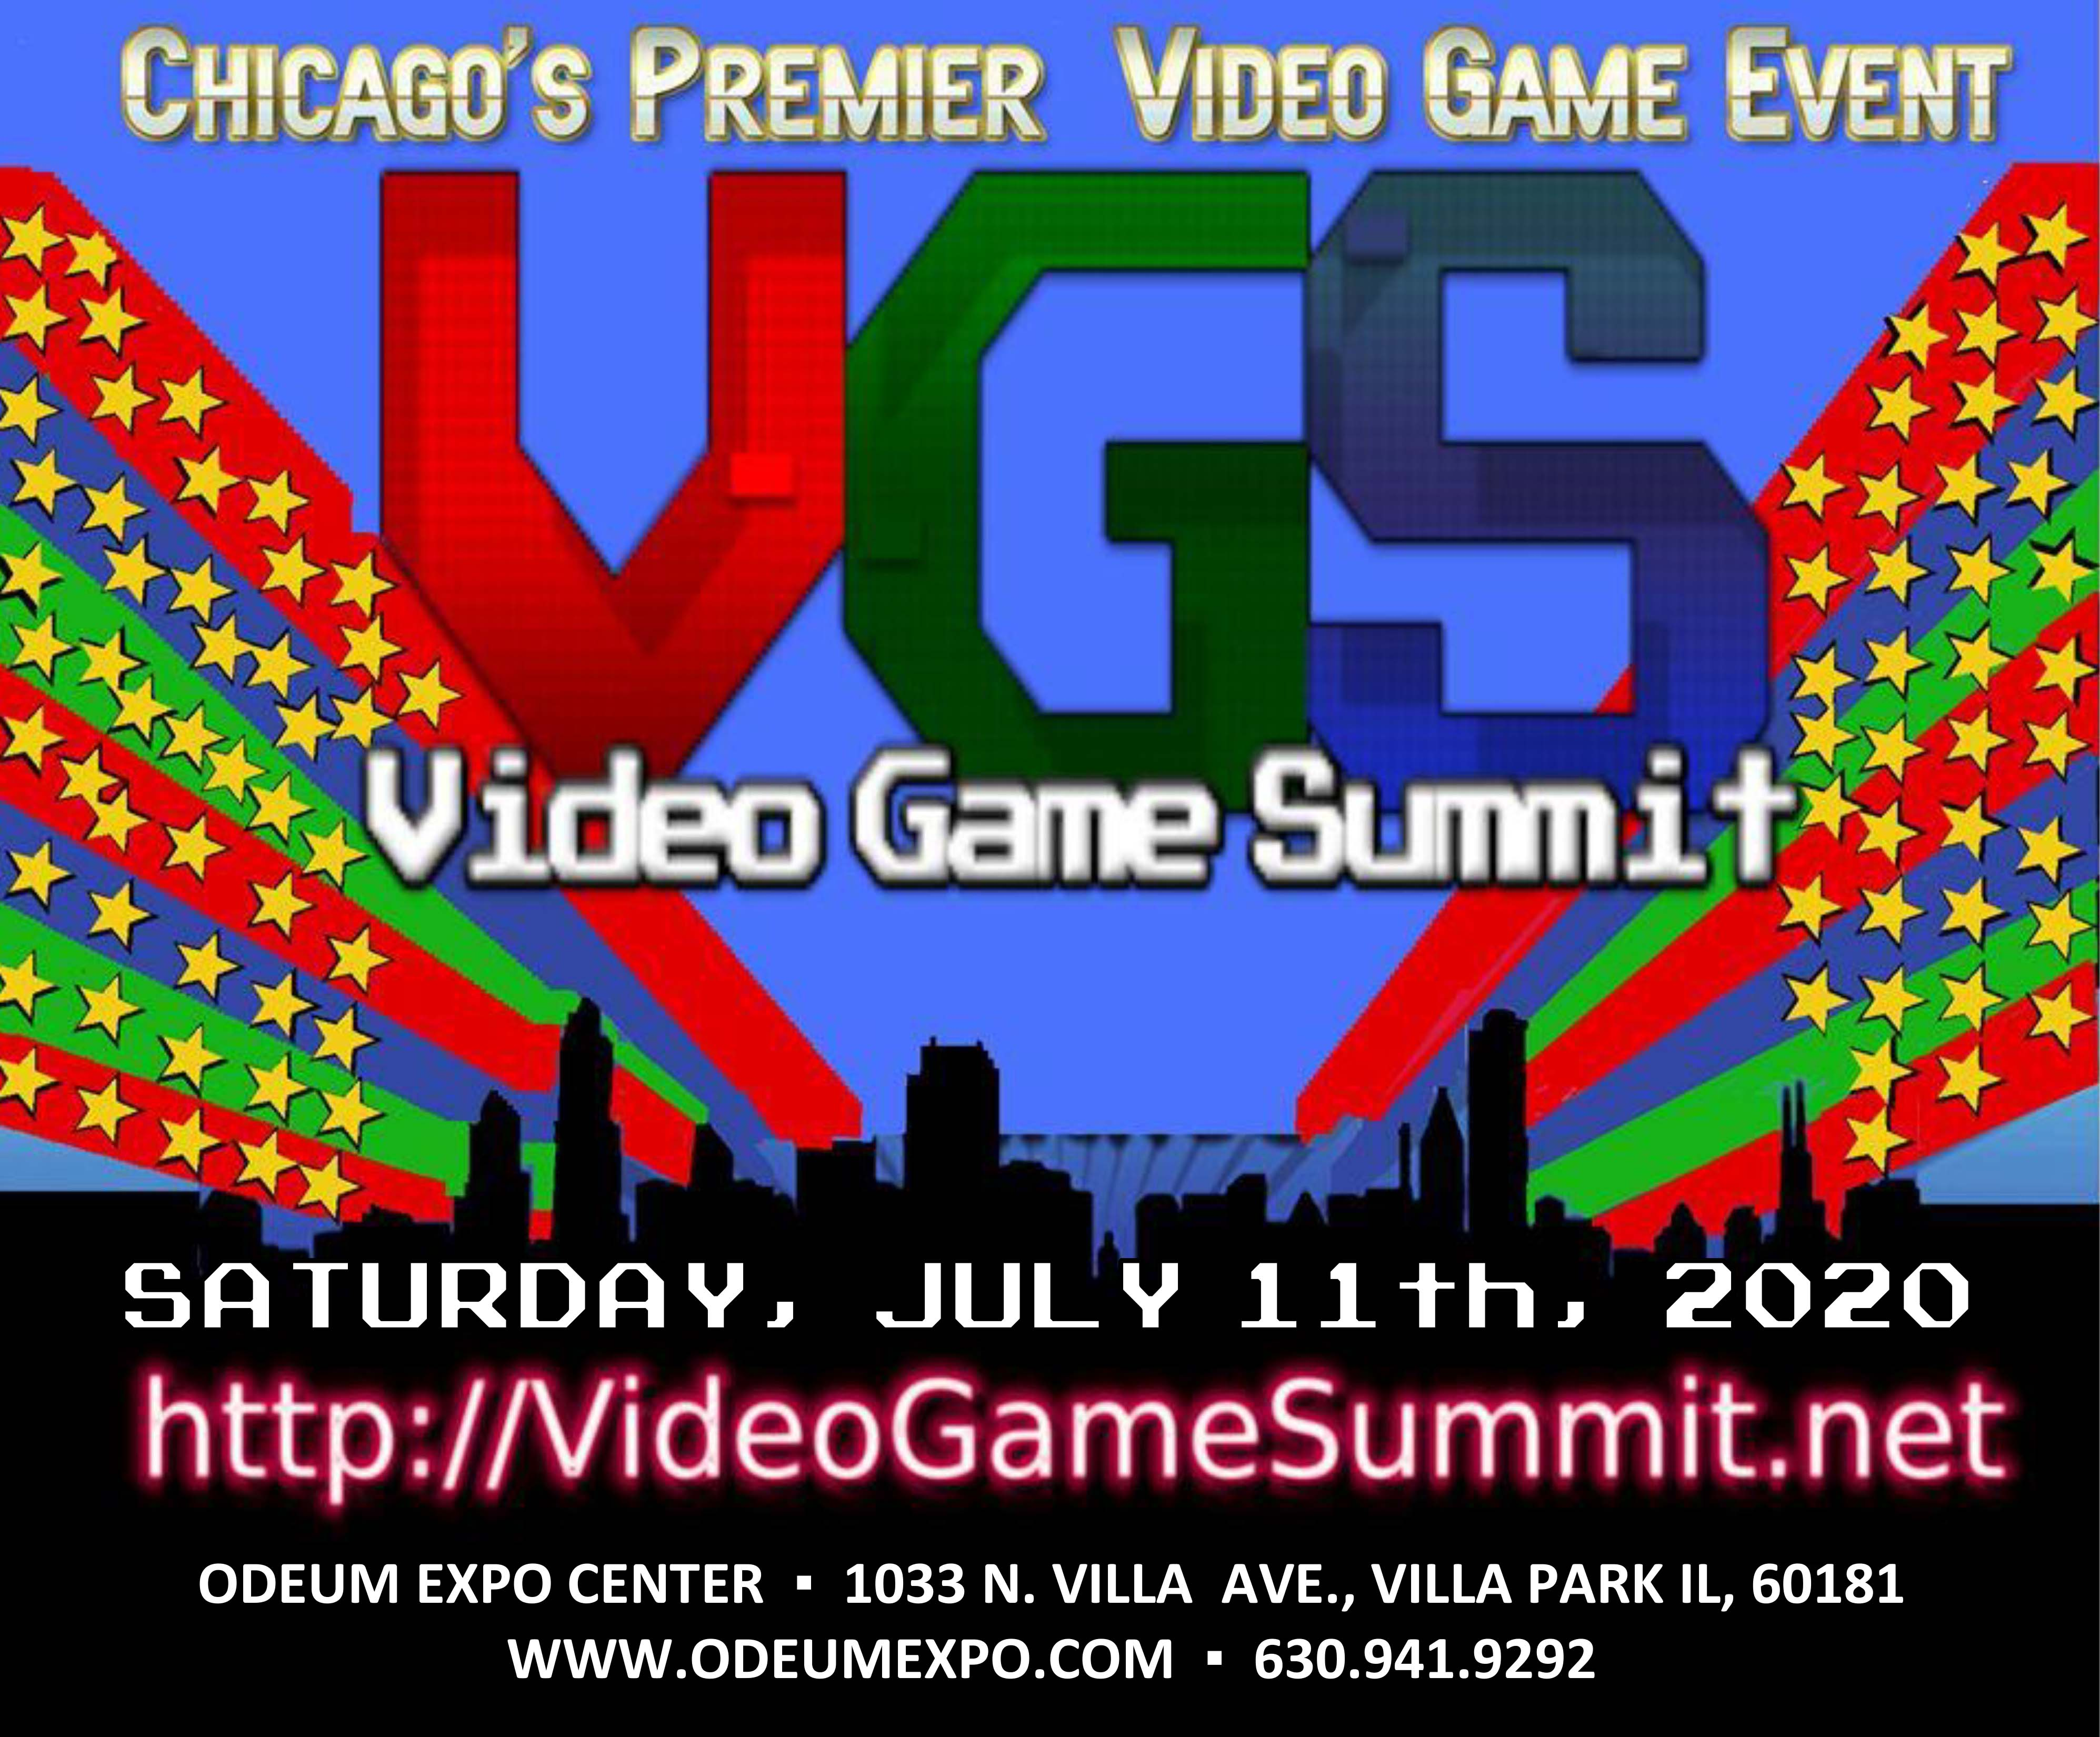 Logo for the Video Game Summit returning to the Odeum Expo Center in Villa Park, Illinois, on July 11, 2020